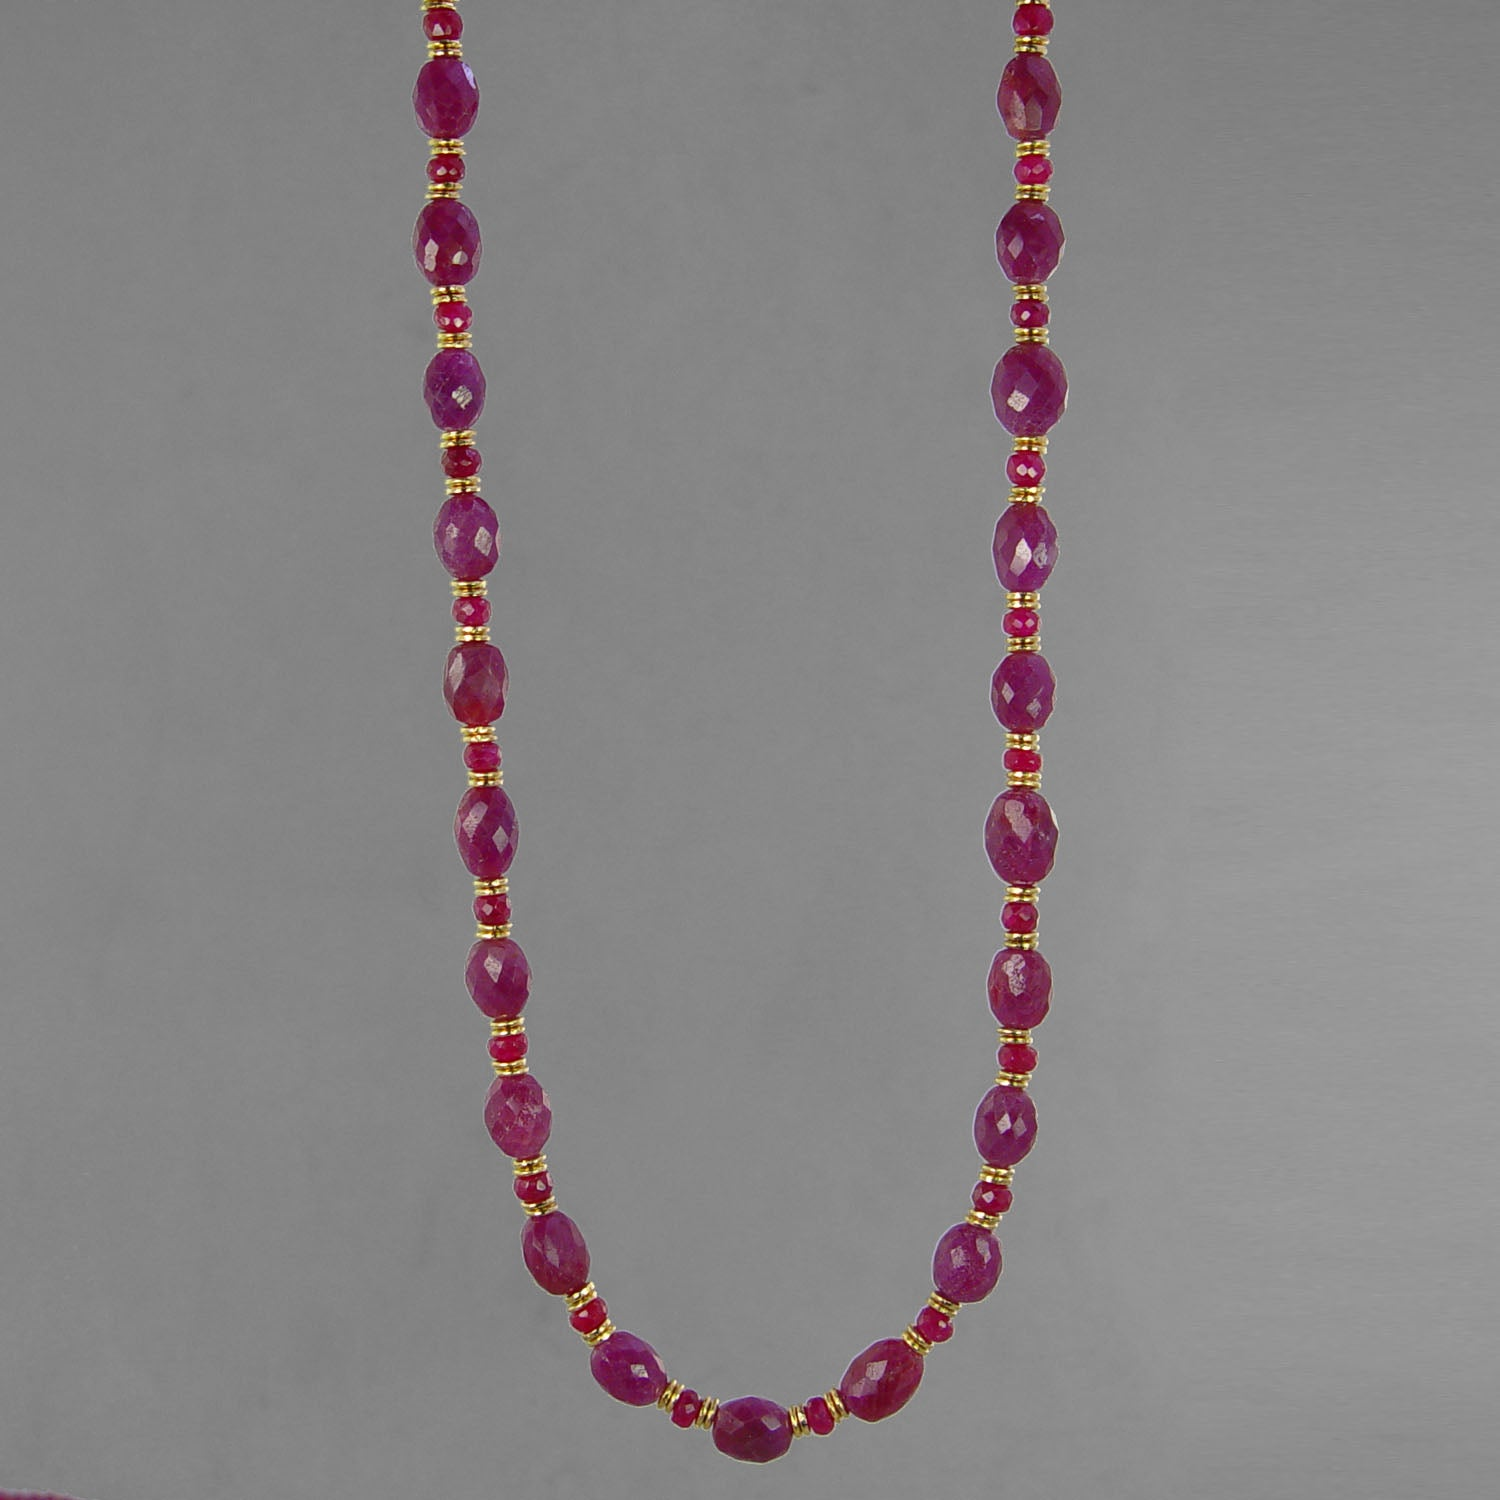 "Ruby Faceted Oval and Rondelle 16"", 18"", or 20"" Necklace, 75-100 ct"